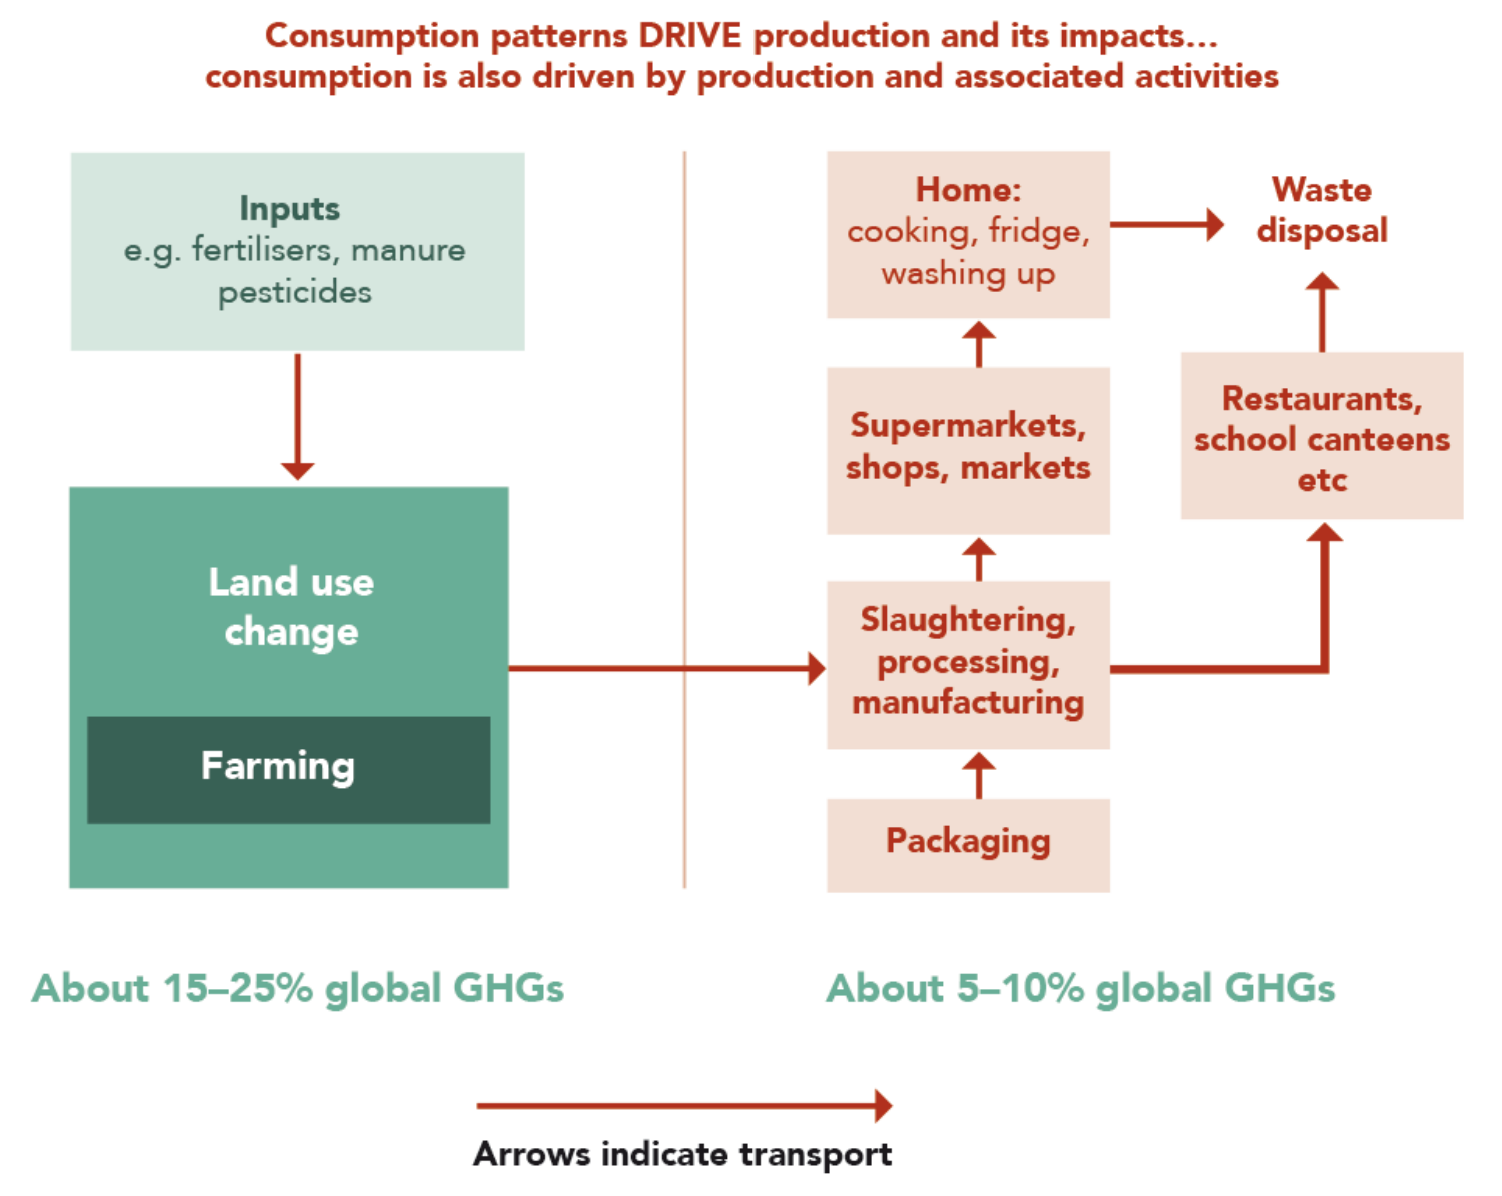 Figure 8: Food system greenhouse gas emissions from production and post-production activities.